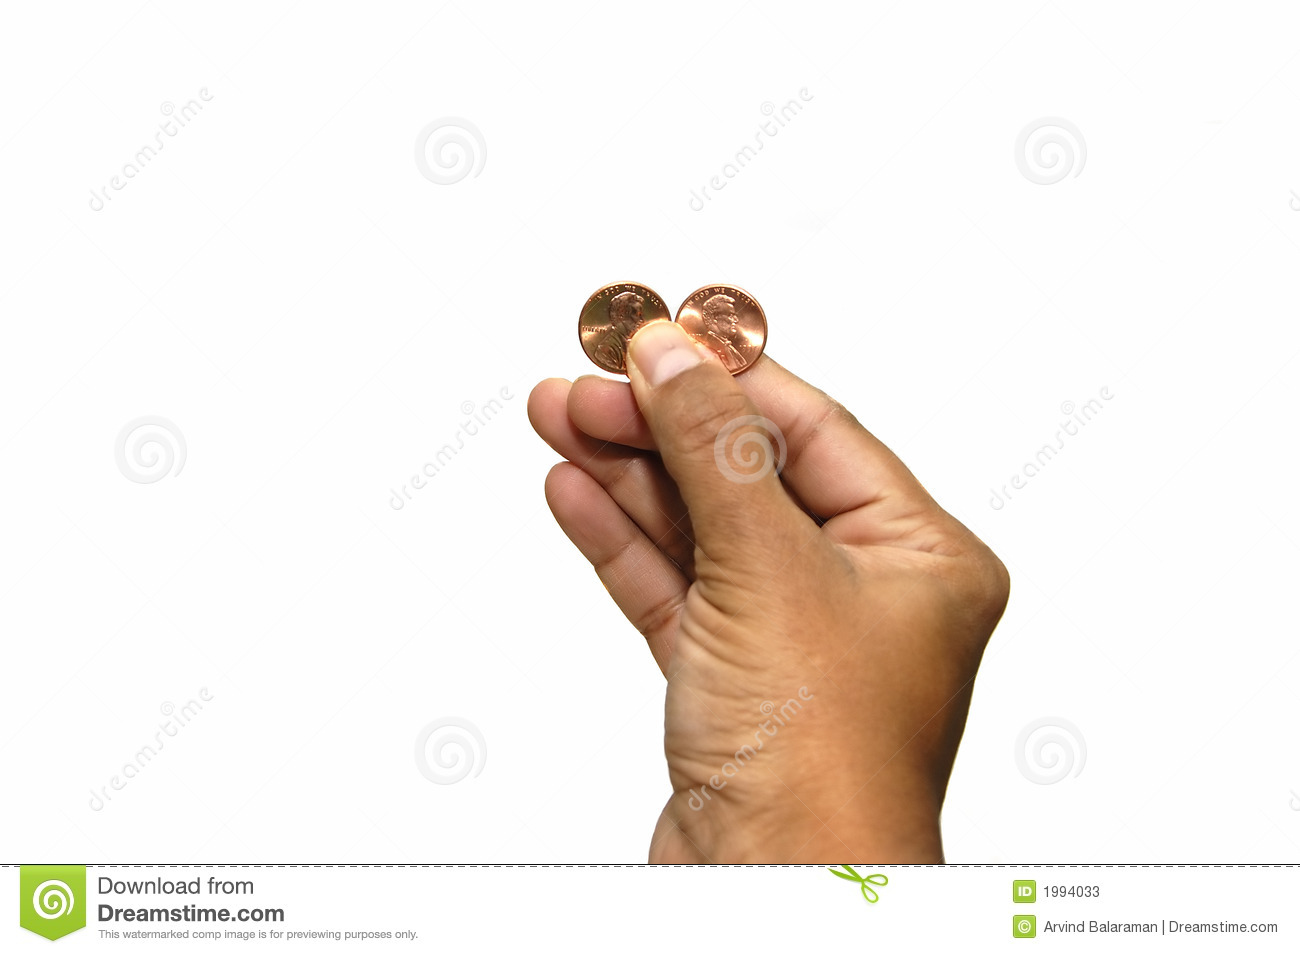 Hand Holding Two Cents Isolated Against A White Background